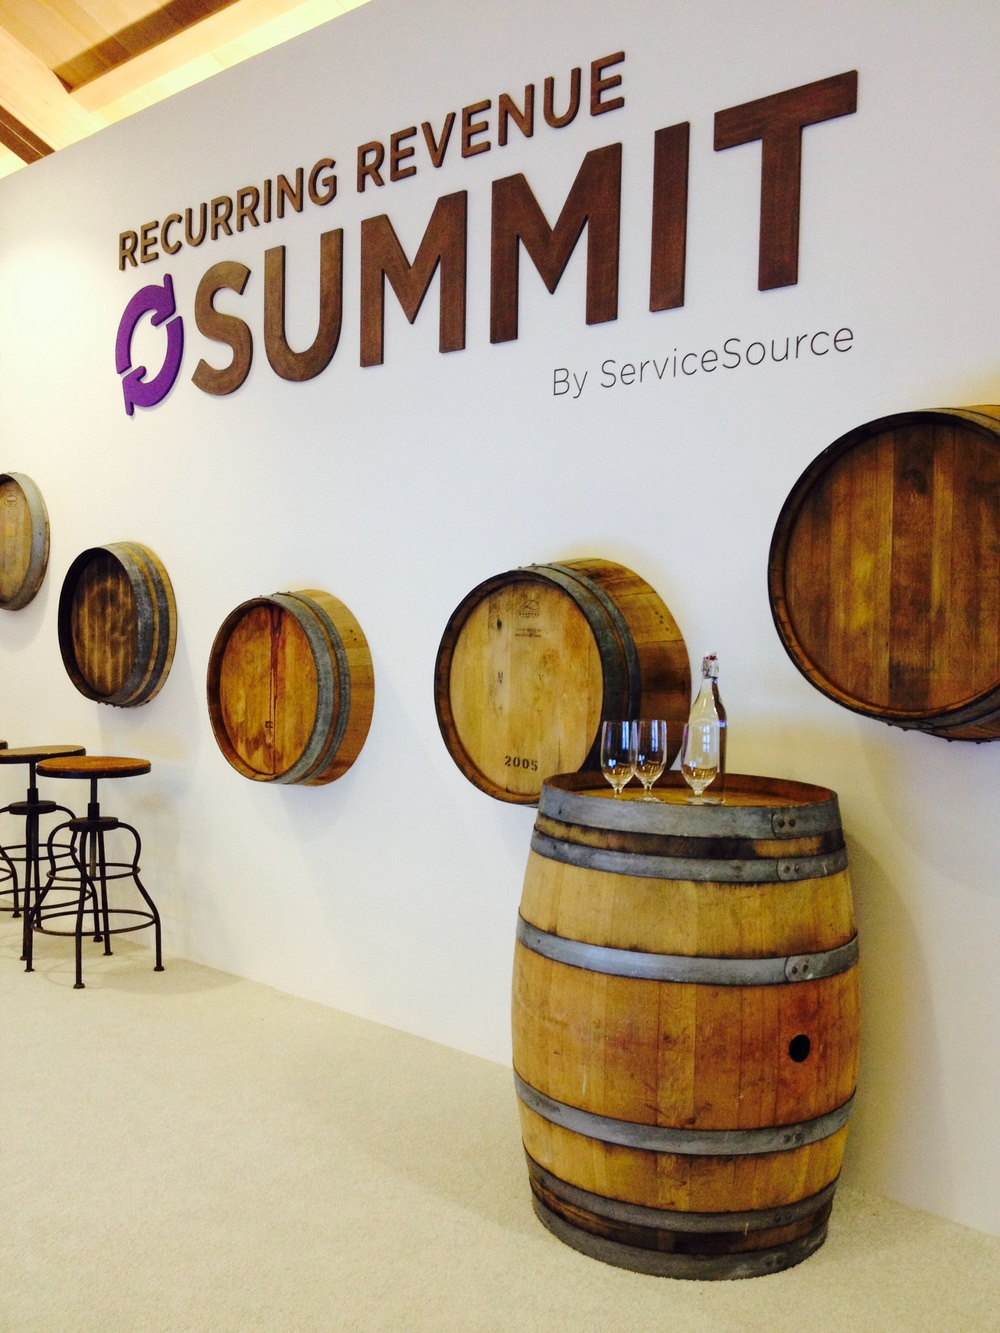 Service Source Recurring Revenue Summit